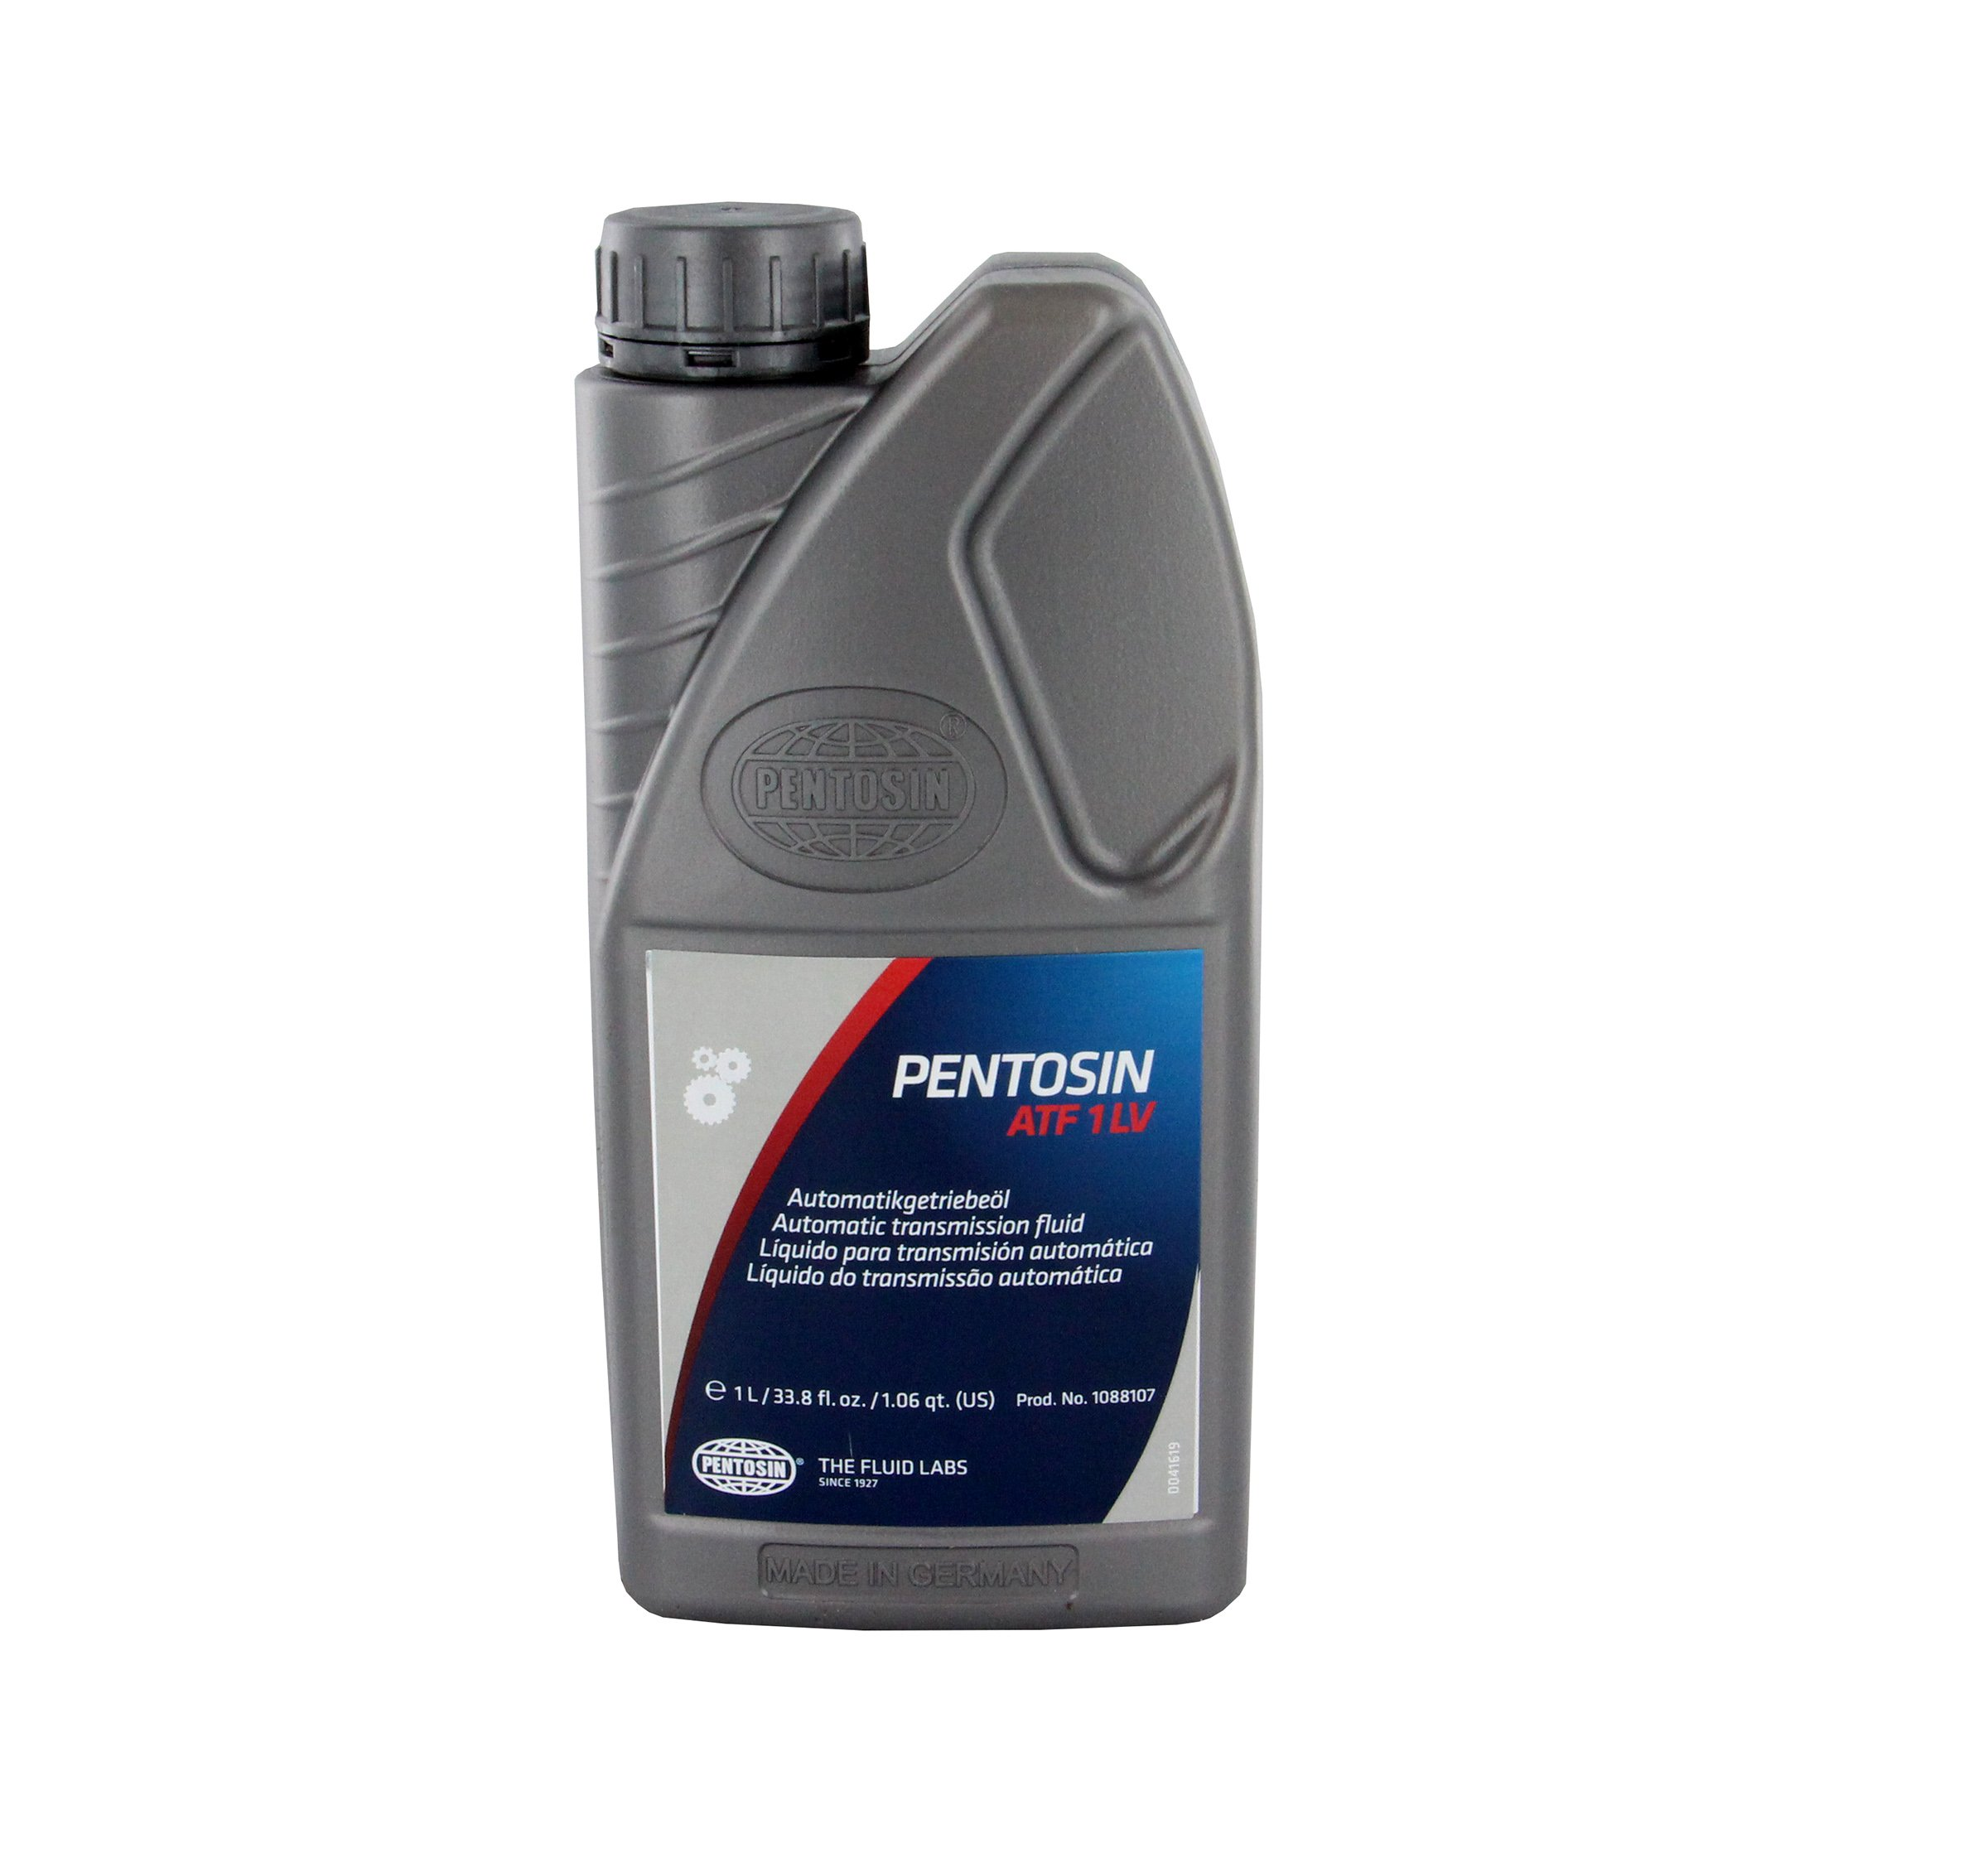 Pentosin 1088107 ATF 1LV Transmission Fluid, 1L